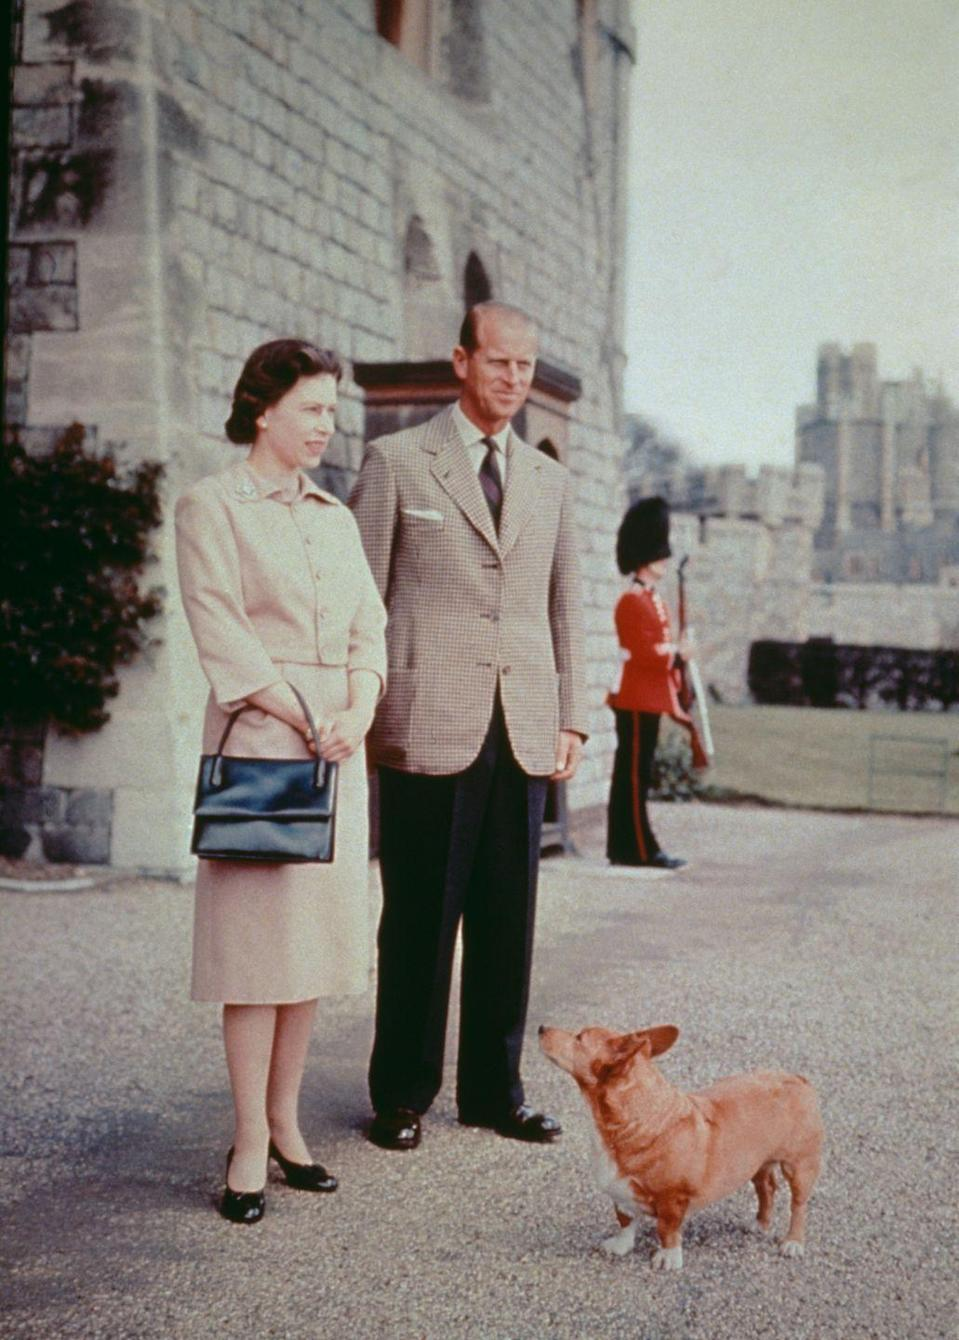 <p>Queen Elizabeth II and Prince Philip with one of their beloved corgis at Windsor Castle in Berkshire, pictured in 1959. </p>